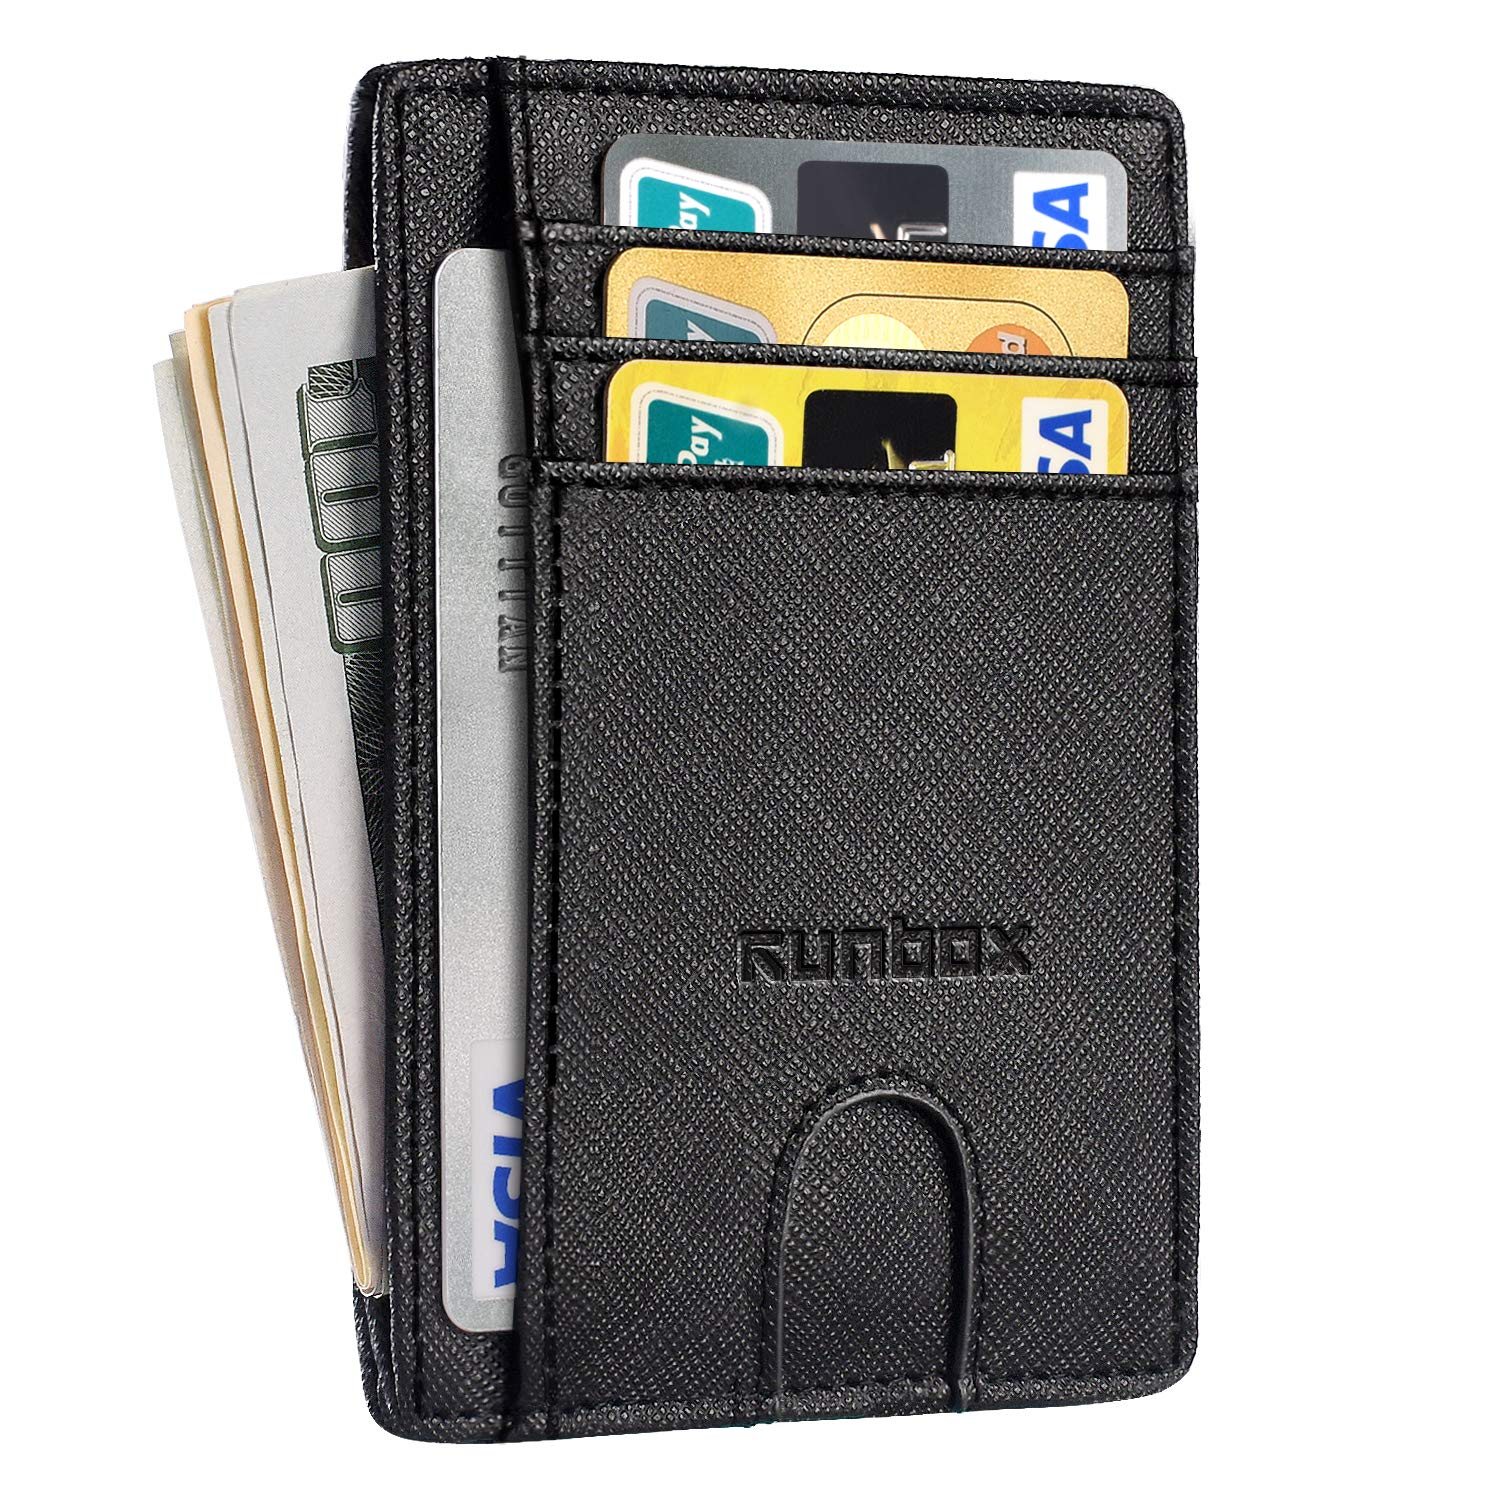 Minimalist Slim Front Pocket Wallets with RFID Blocking & Genuine Leather for Men or Women